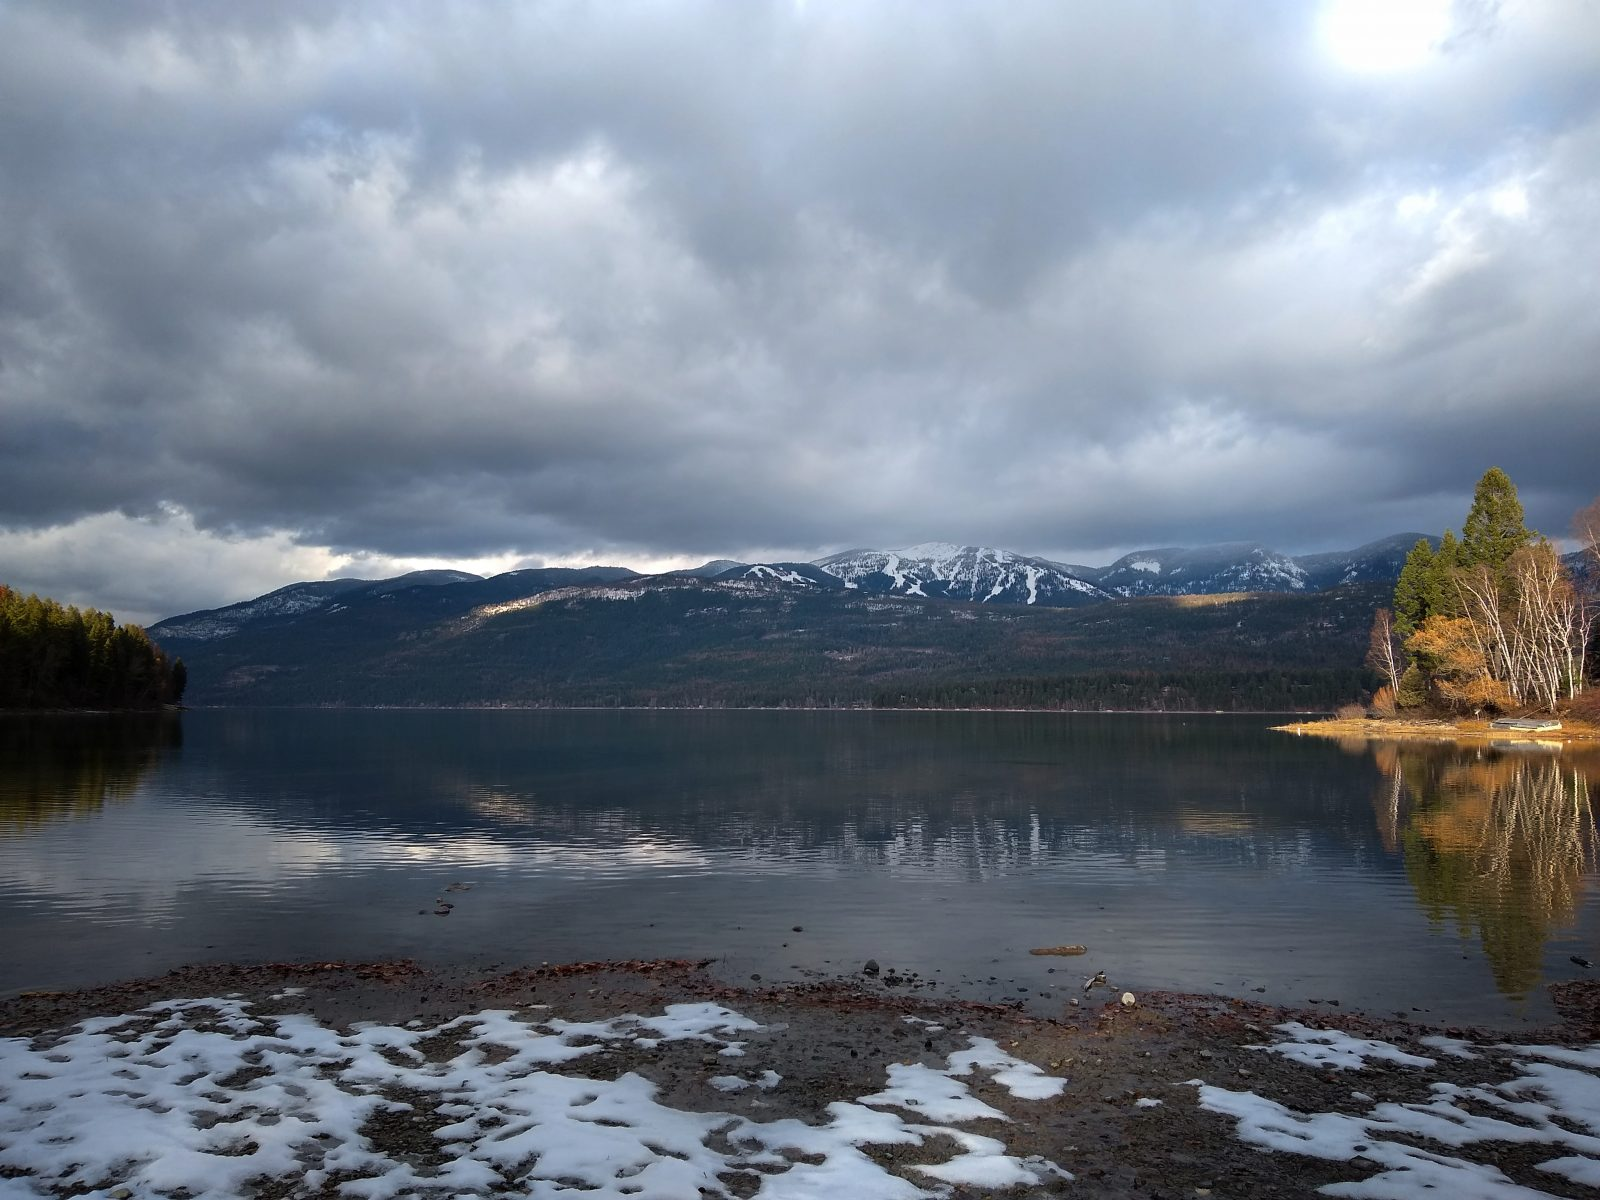 Whitefish Lake - November 21, 2020